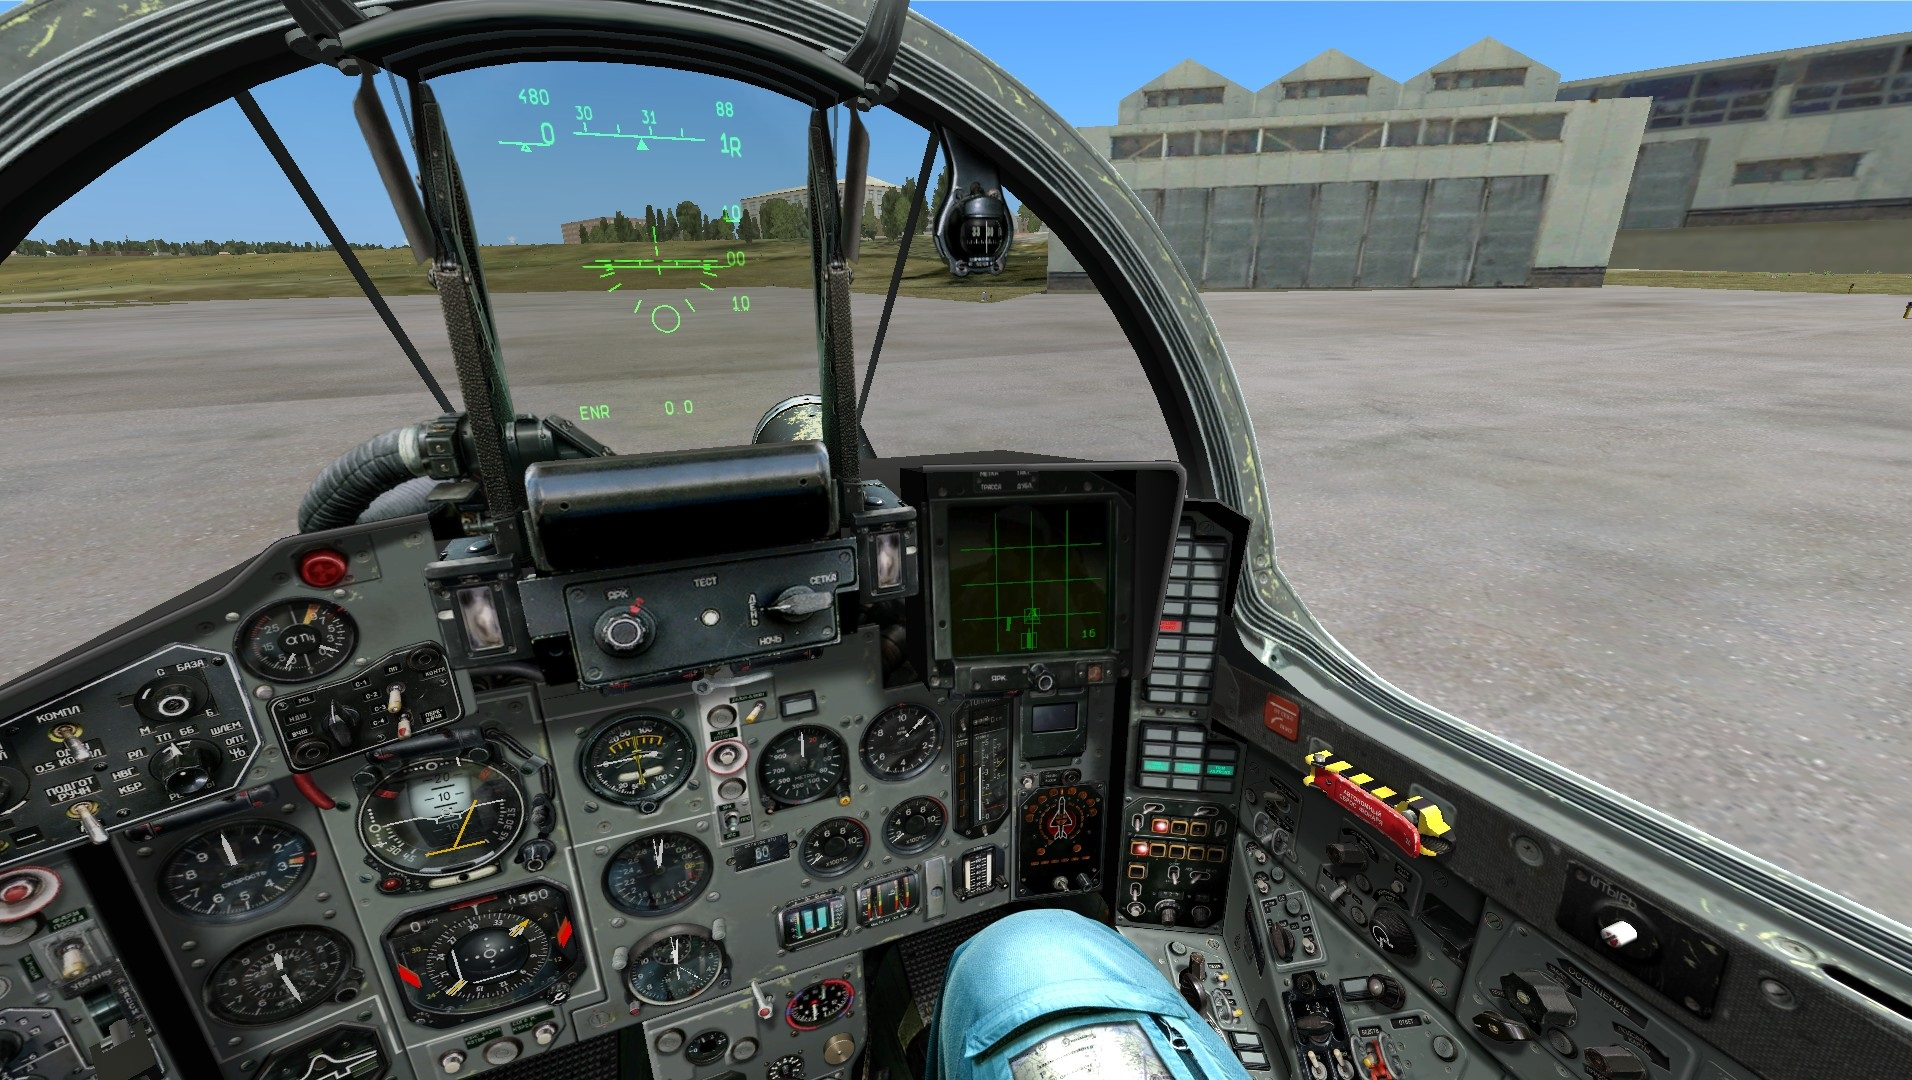 Flight Manual An aeronautical map for PC owners of DCS: Black Shark and